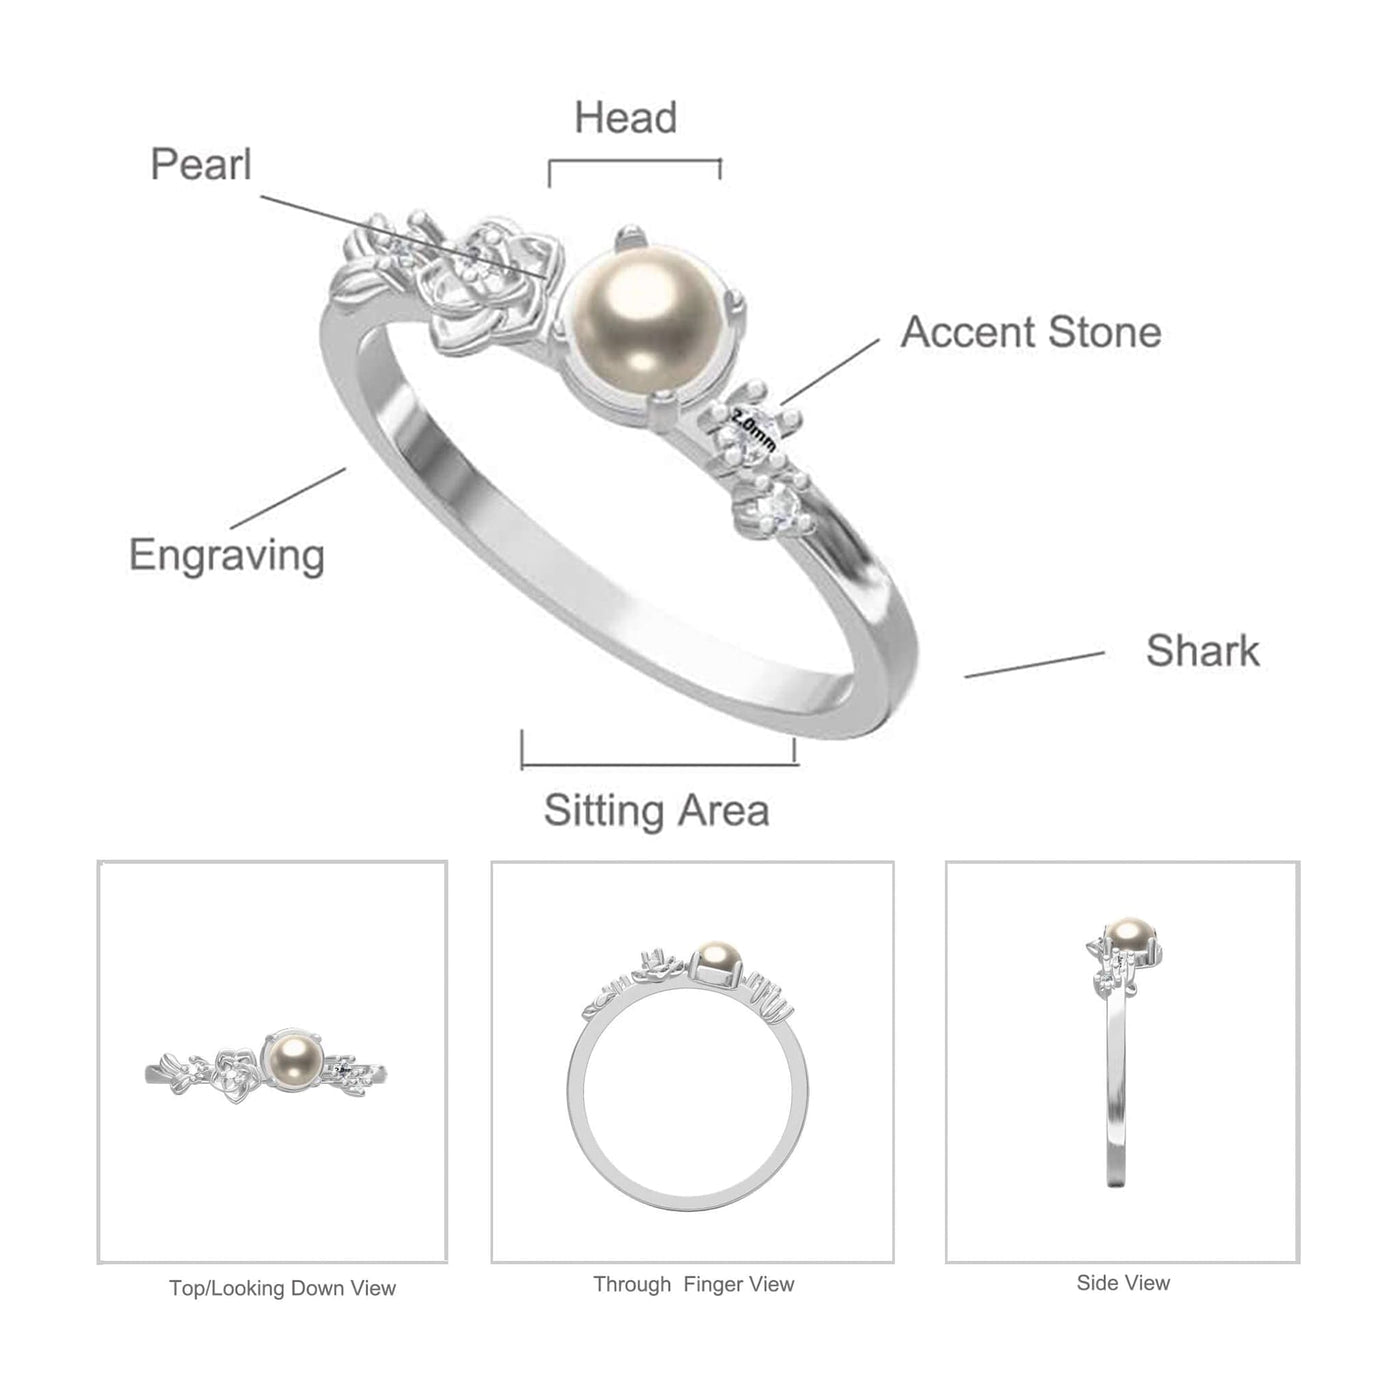 Grace Ring Diagram and Specifications